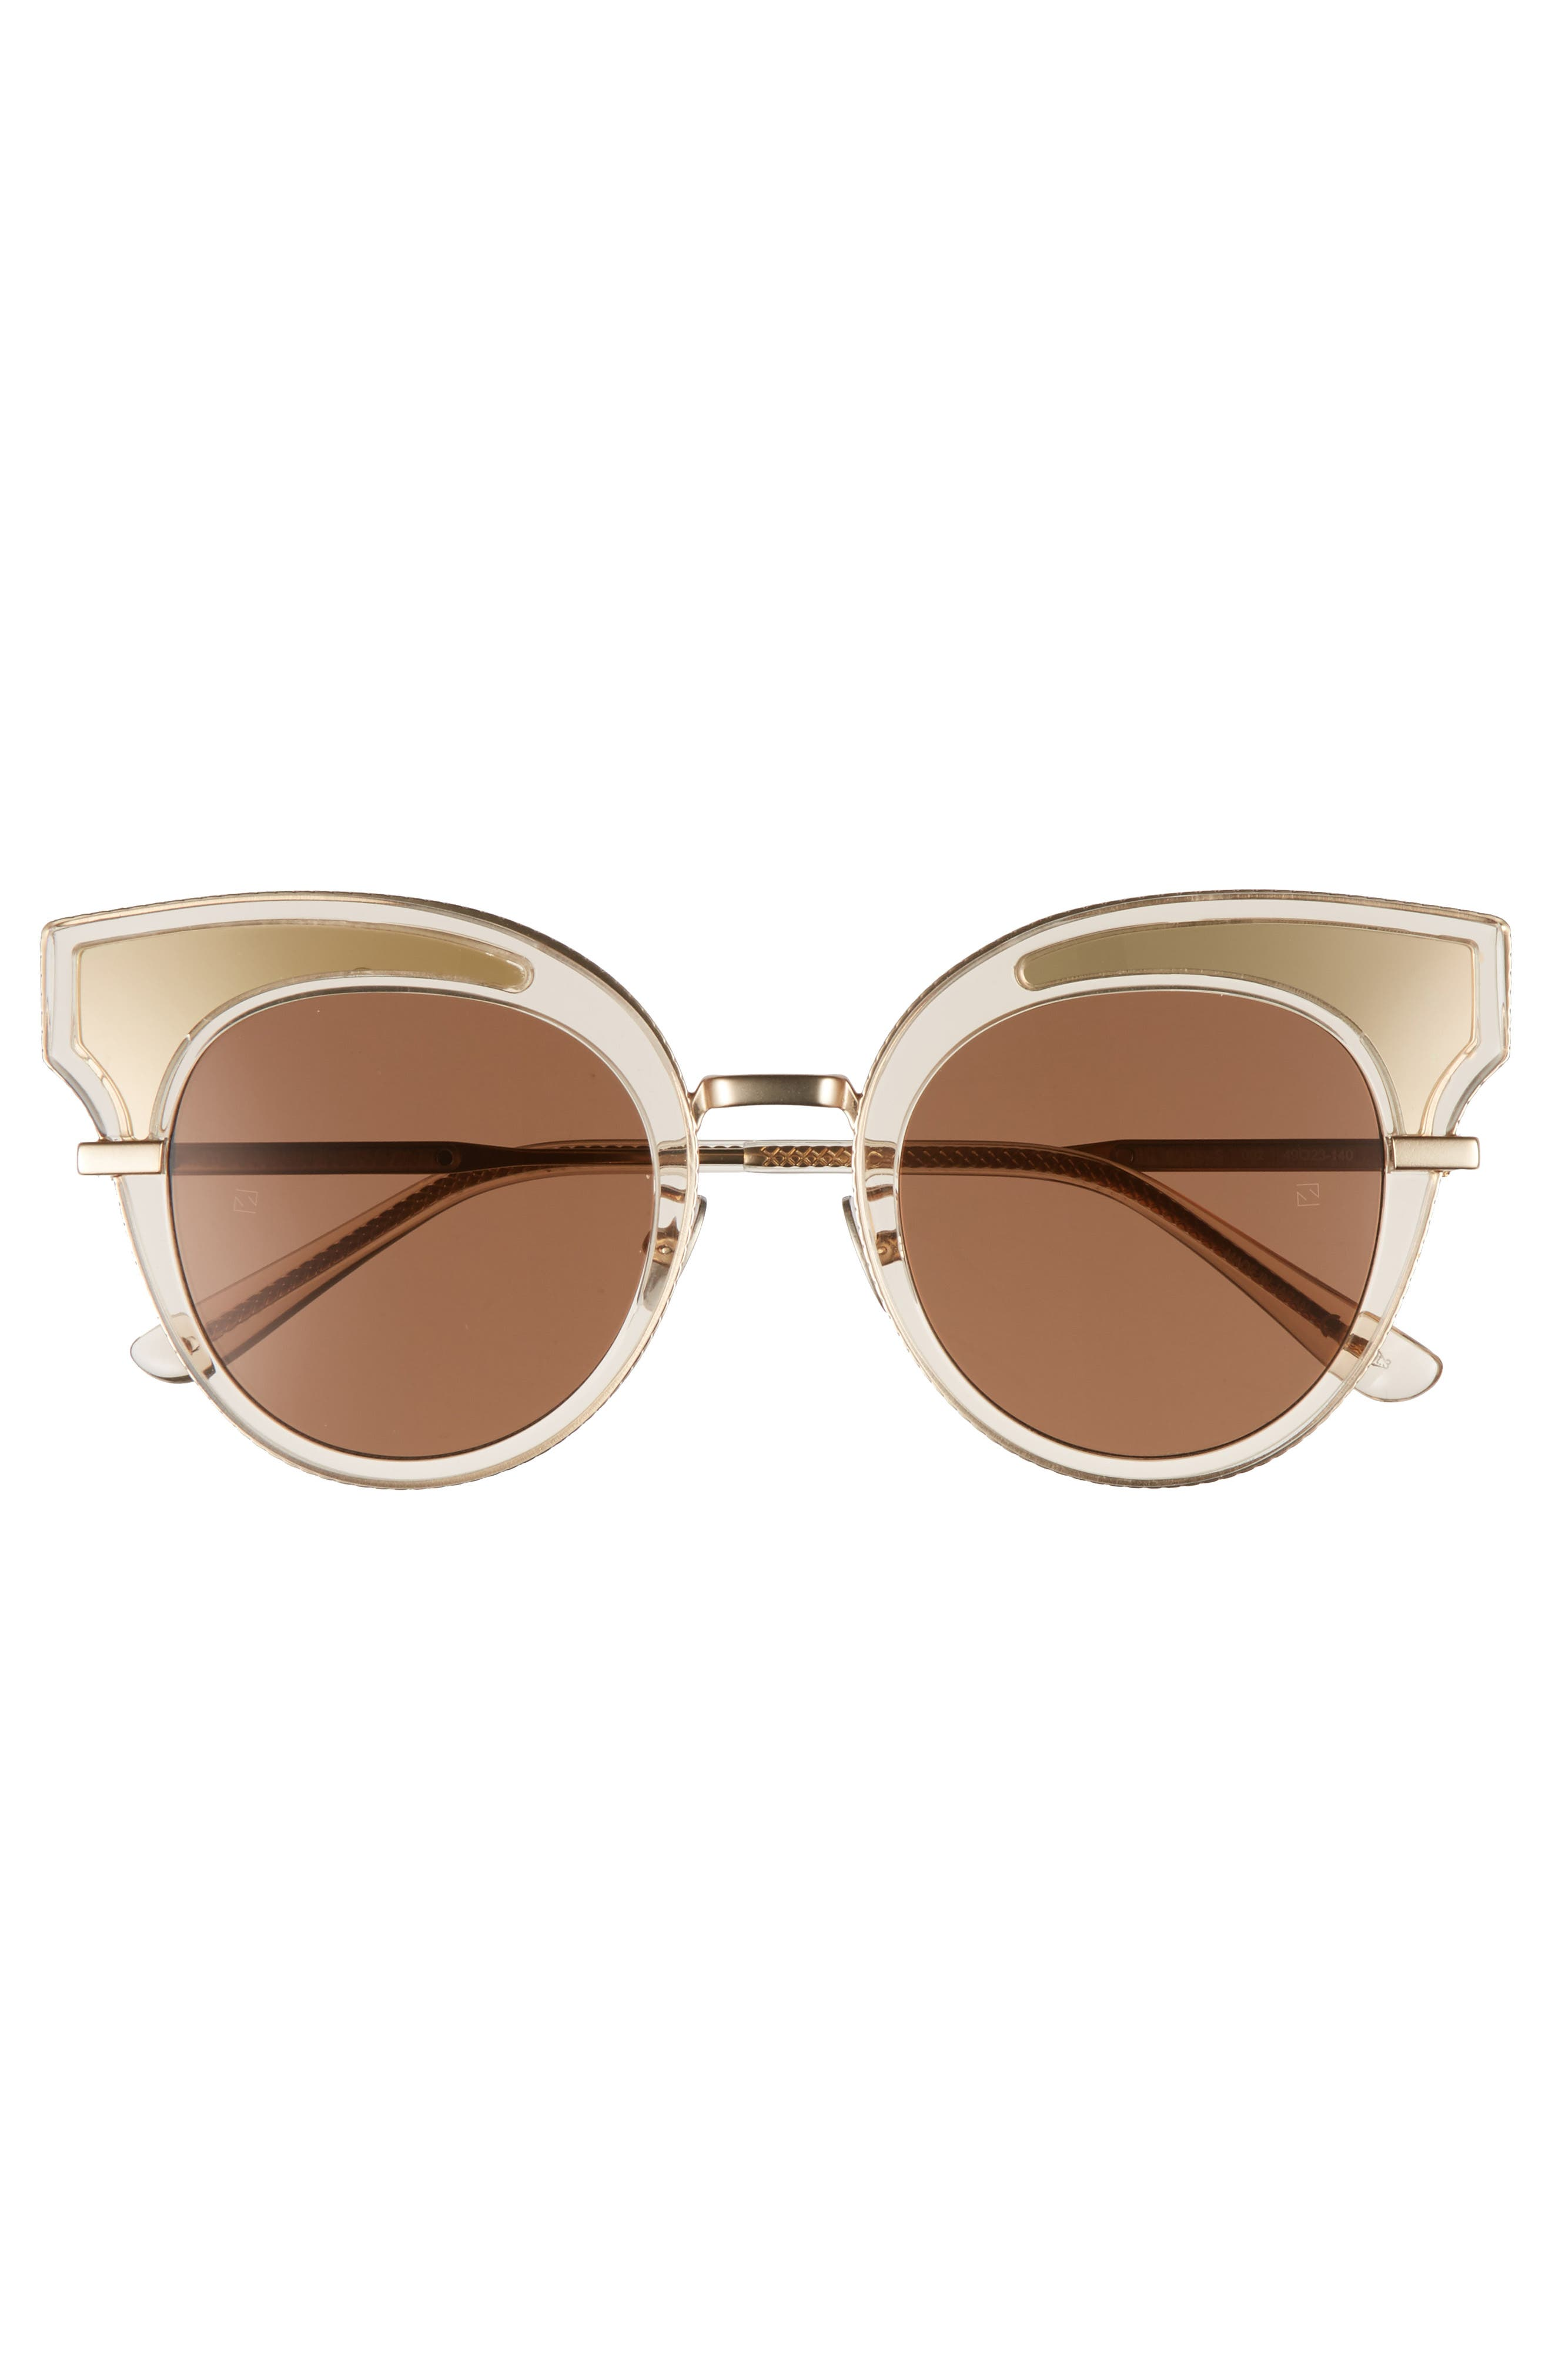 Alternate Image 3  - Bottega Veneta 49mm Cat Eye Sunglasses